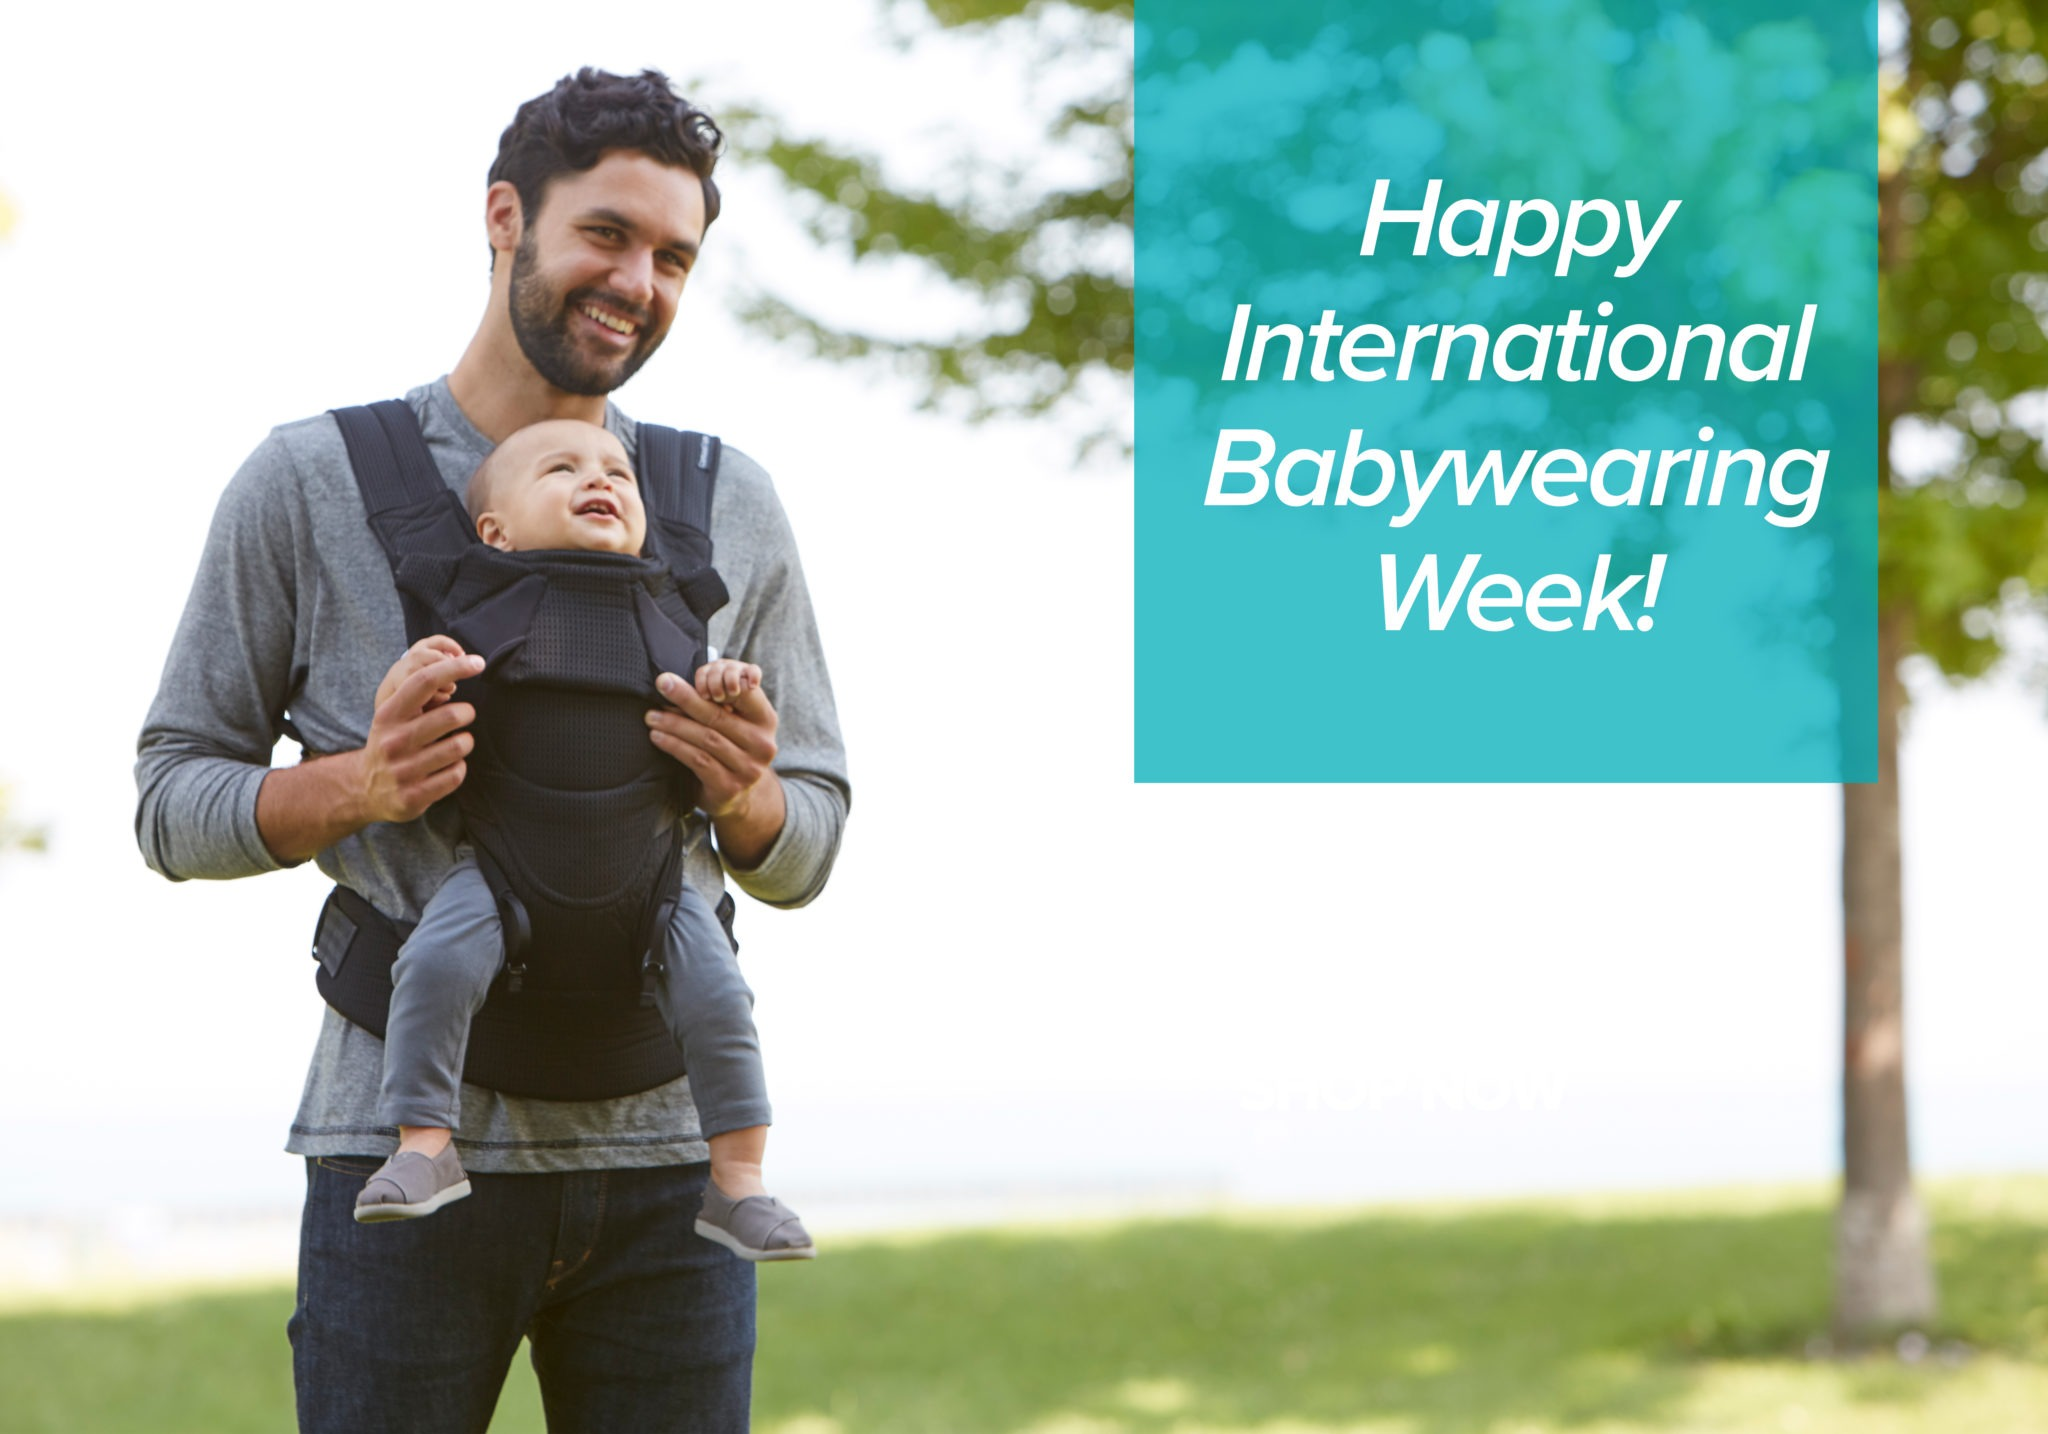 International Babywearing Week 2018: How to Celebrate